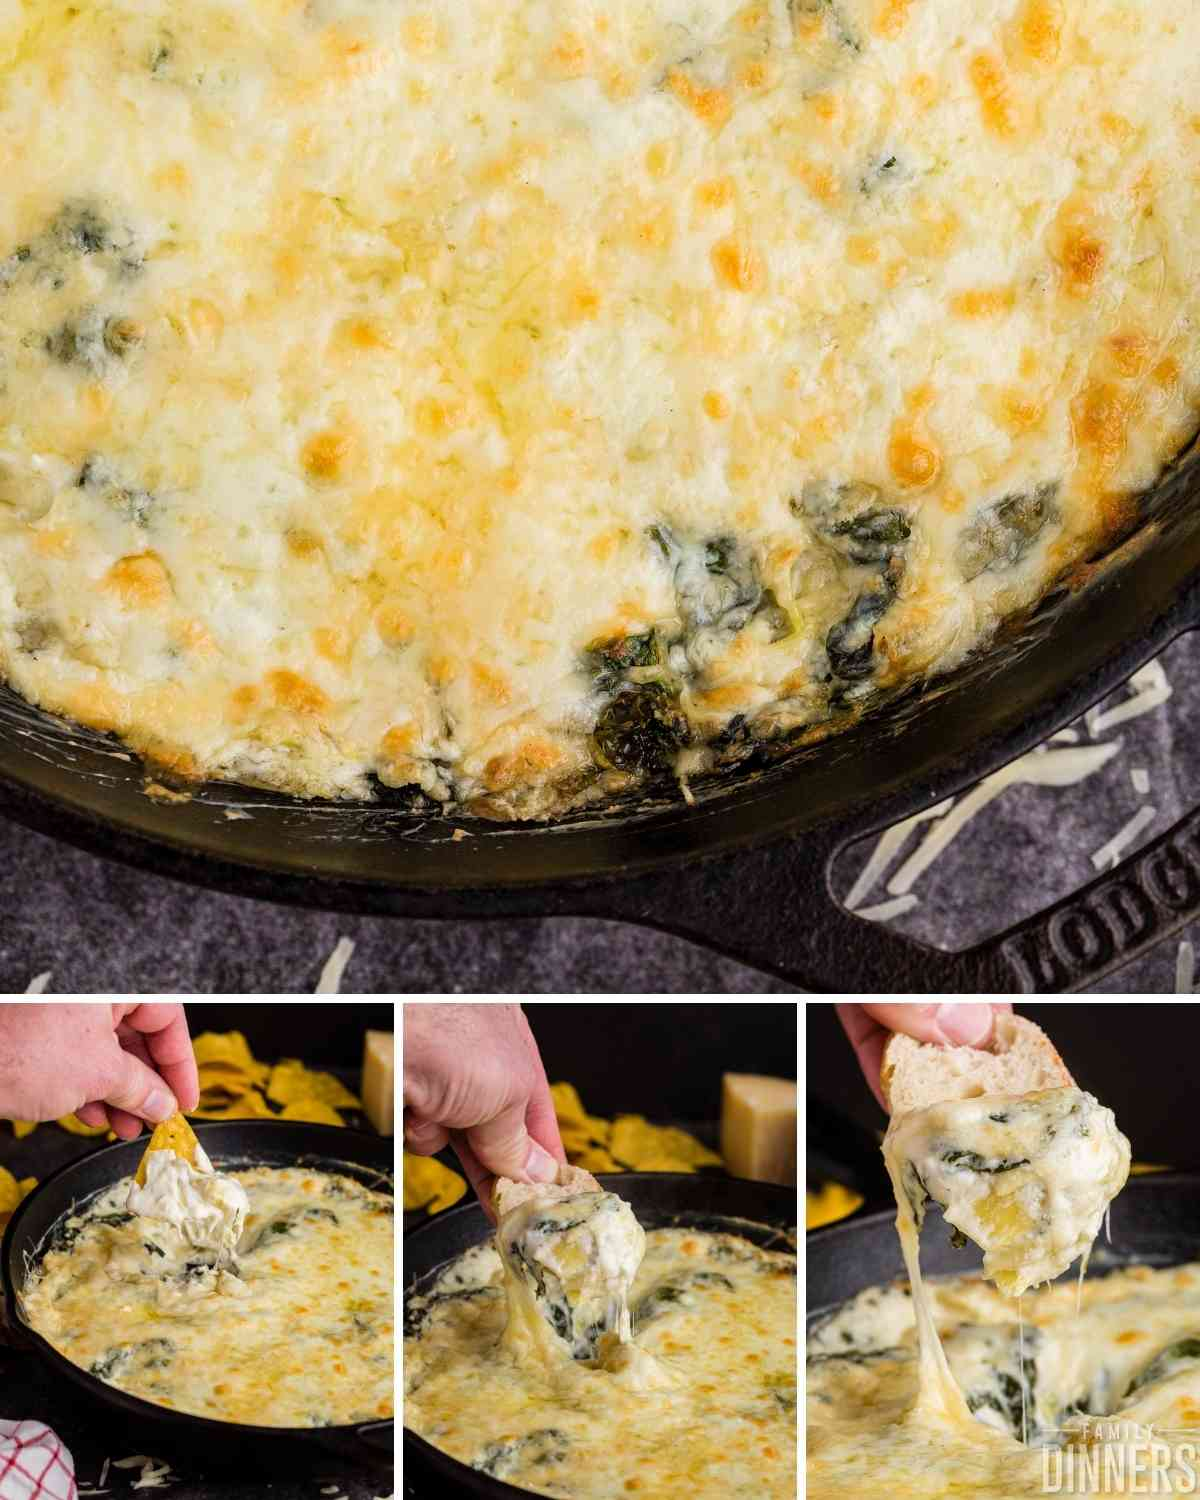 Golden cheesy top on a pan of cheesy spinach dip